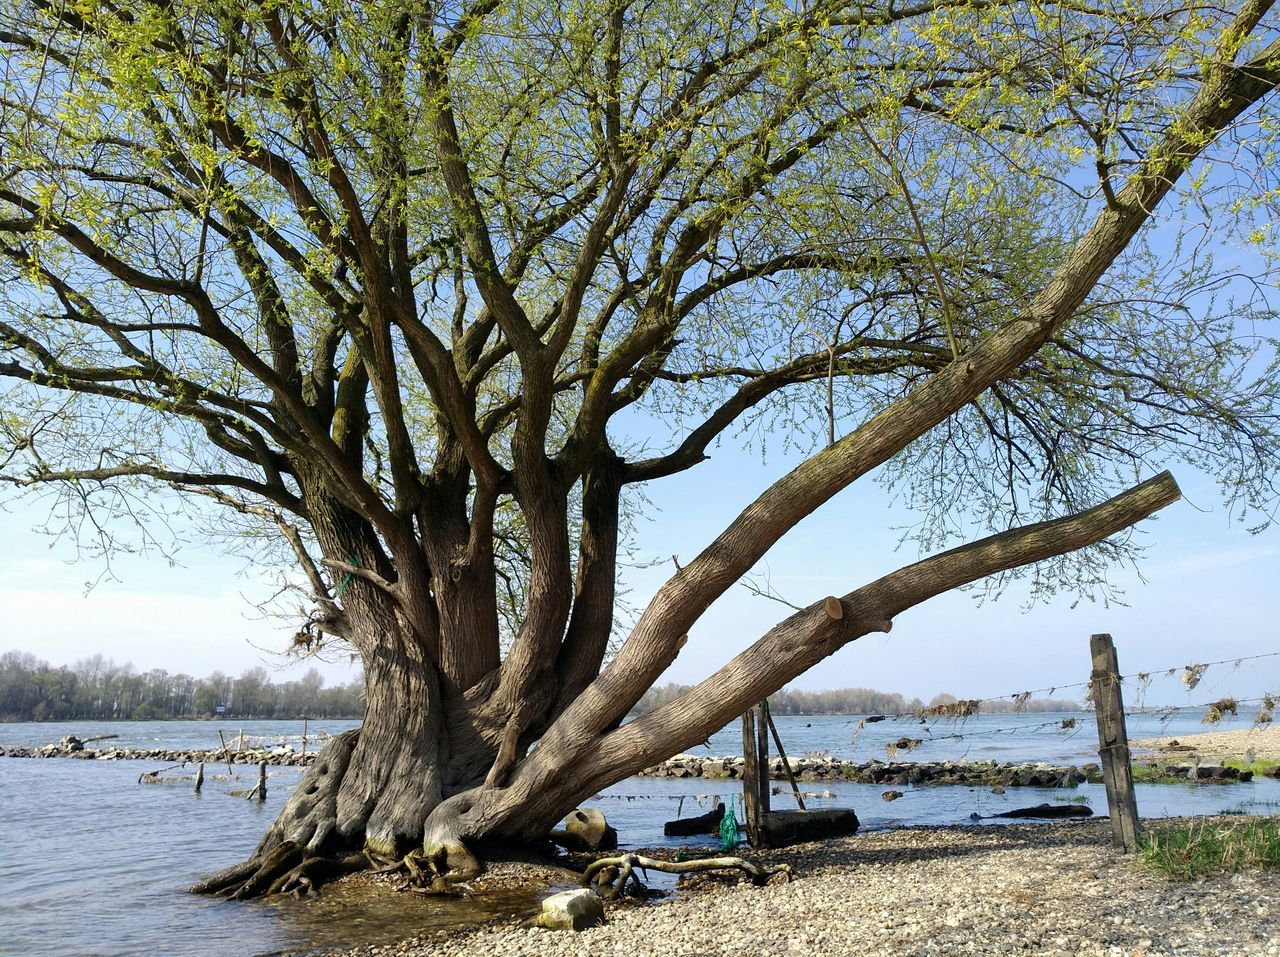 Tree Sea Nature Water Beauty In Nature Sky No People Horizon Over Water Tranquility Scenics Outdoors Beach Branch Tranquil Scene Day We Are Photography, We Are EyeEm Spring Into Spring Spring Has Arrived Spring Springtime Beauty In Nature Tree Landscape Melancholic Landscapes